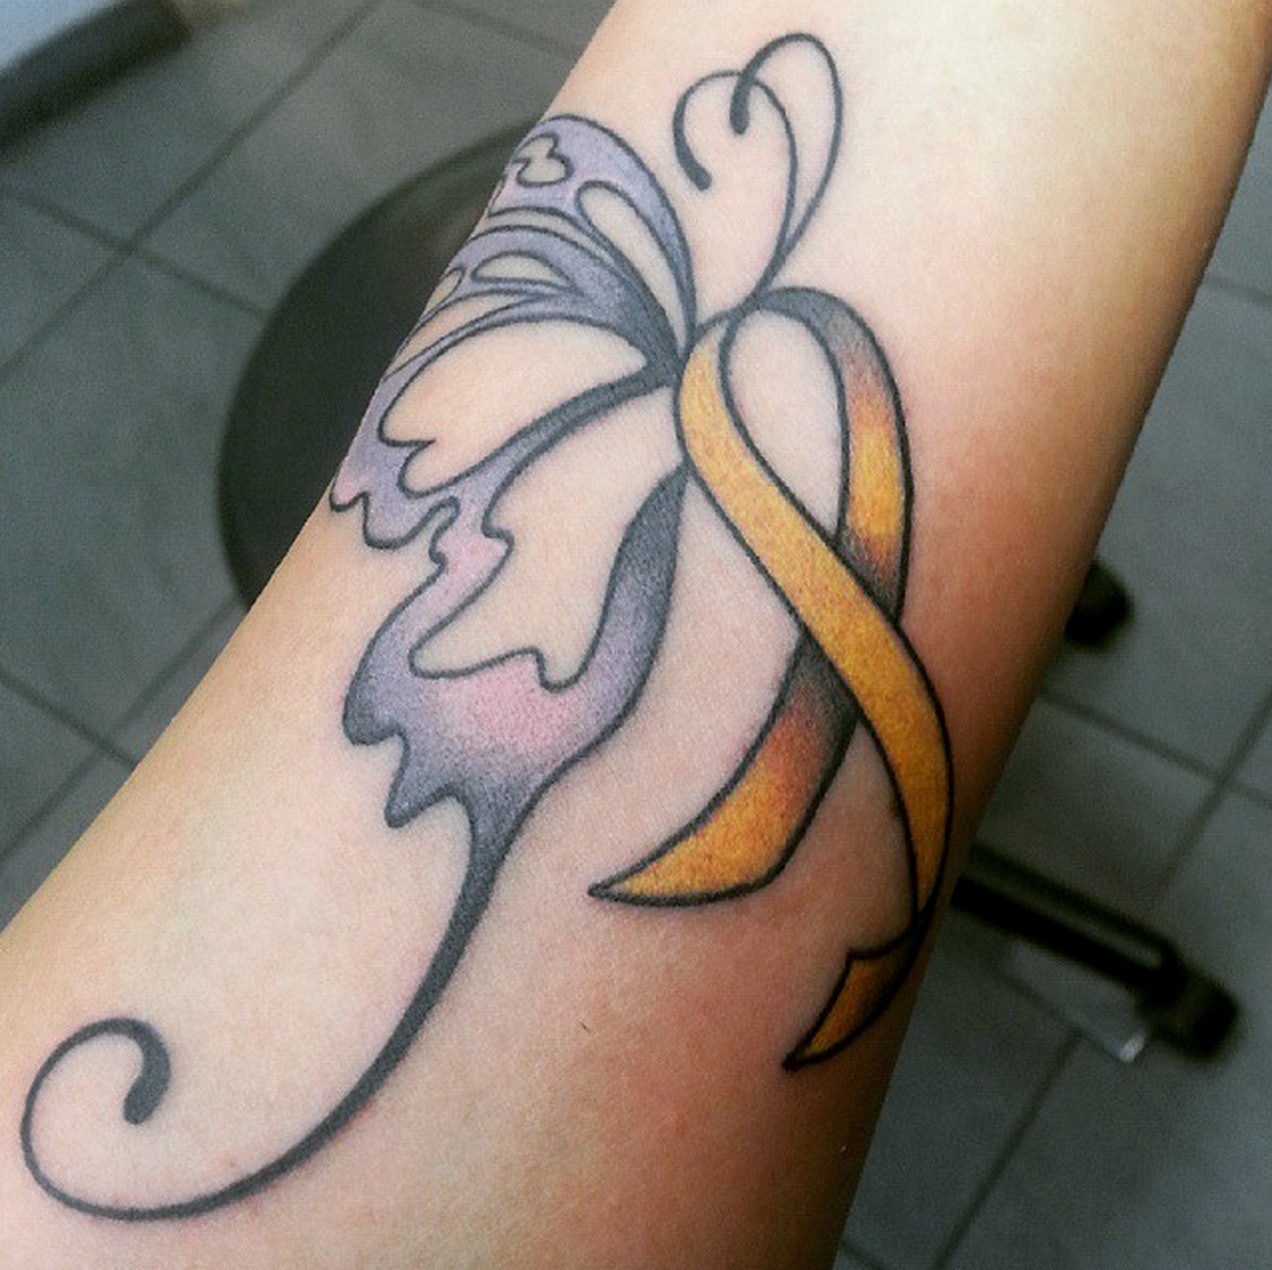 What Do Butterfly Cancer Ribbon Tattoos Mean Survivors Of Cancer